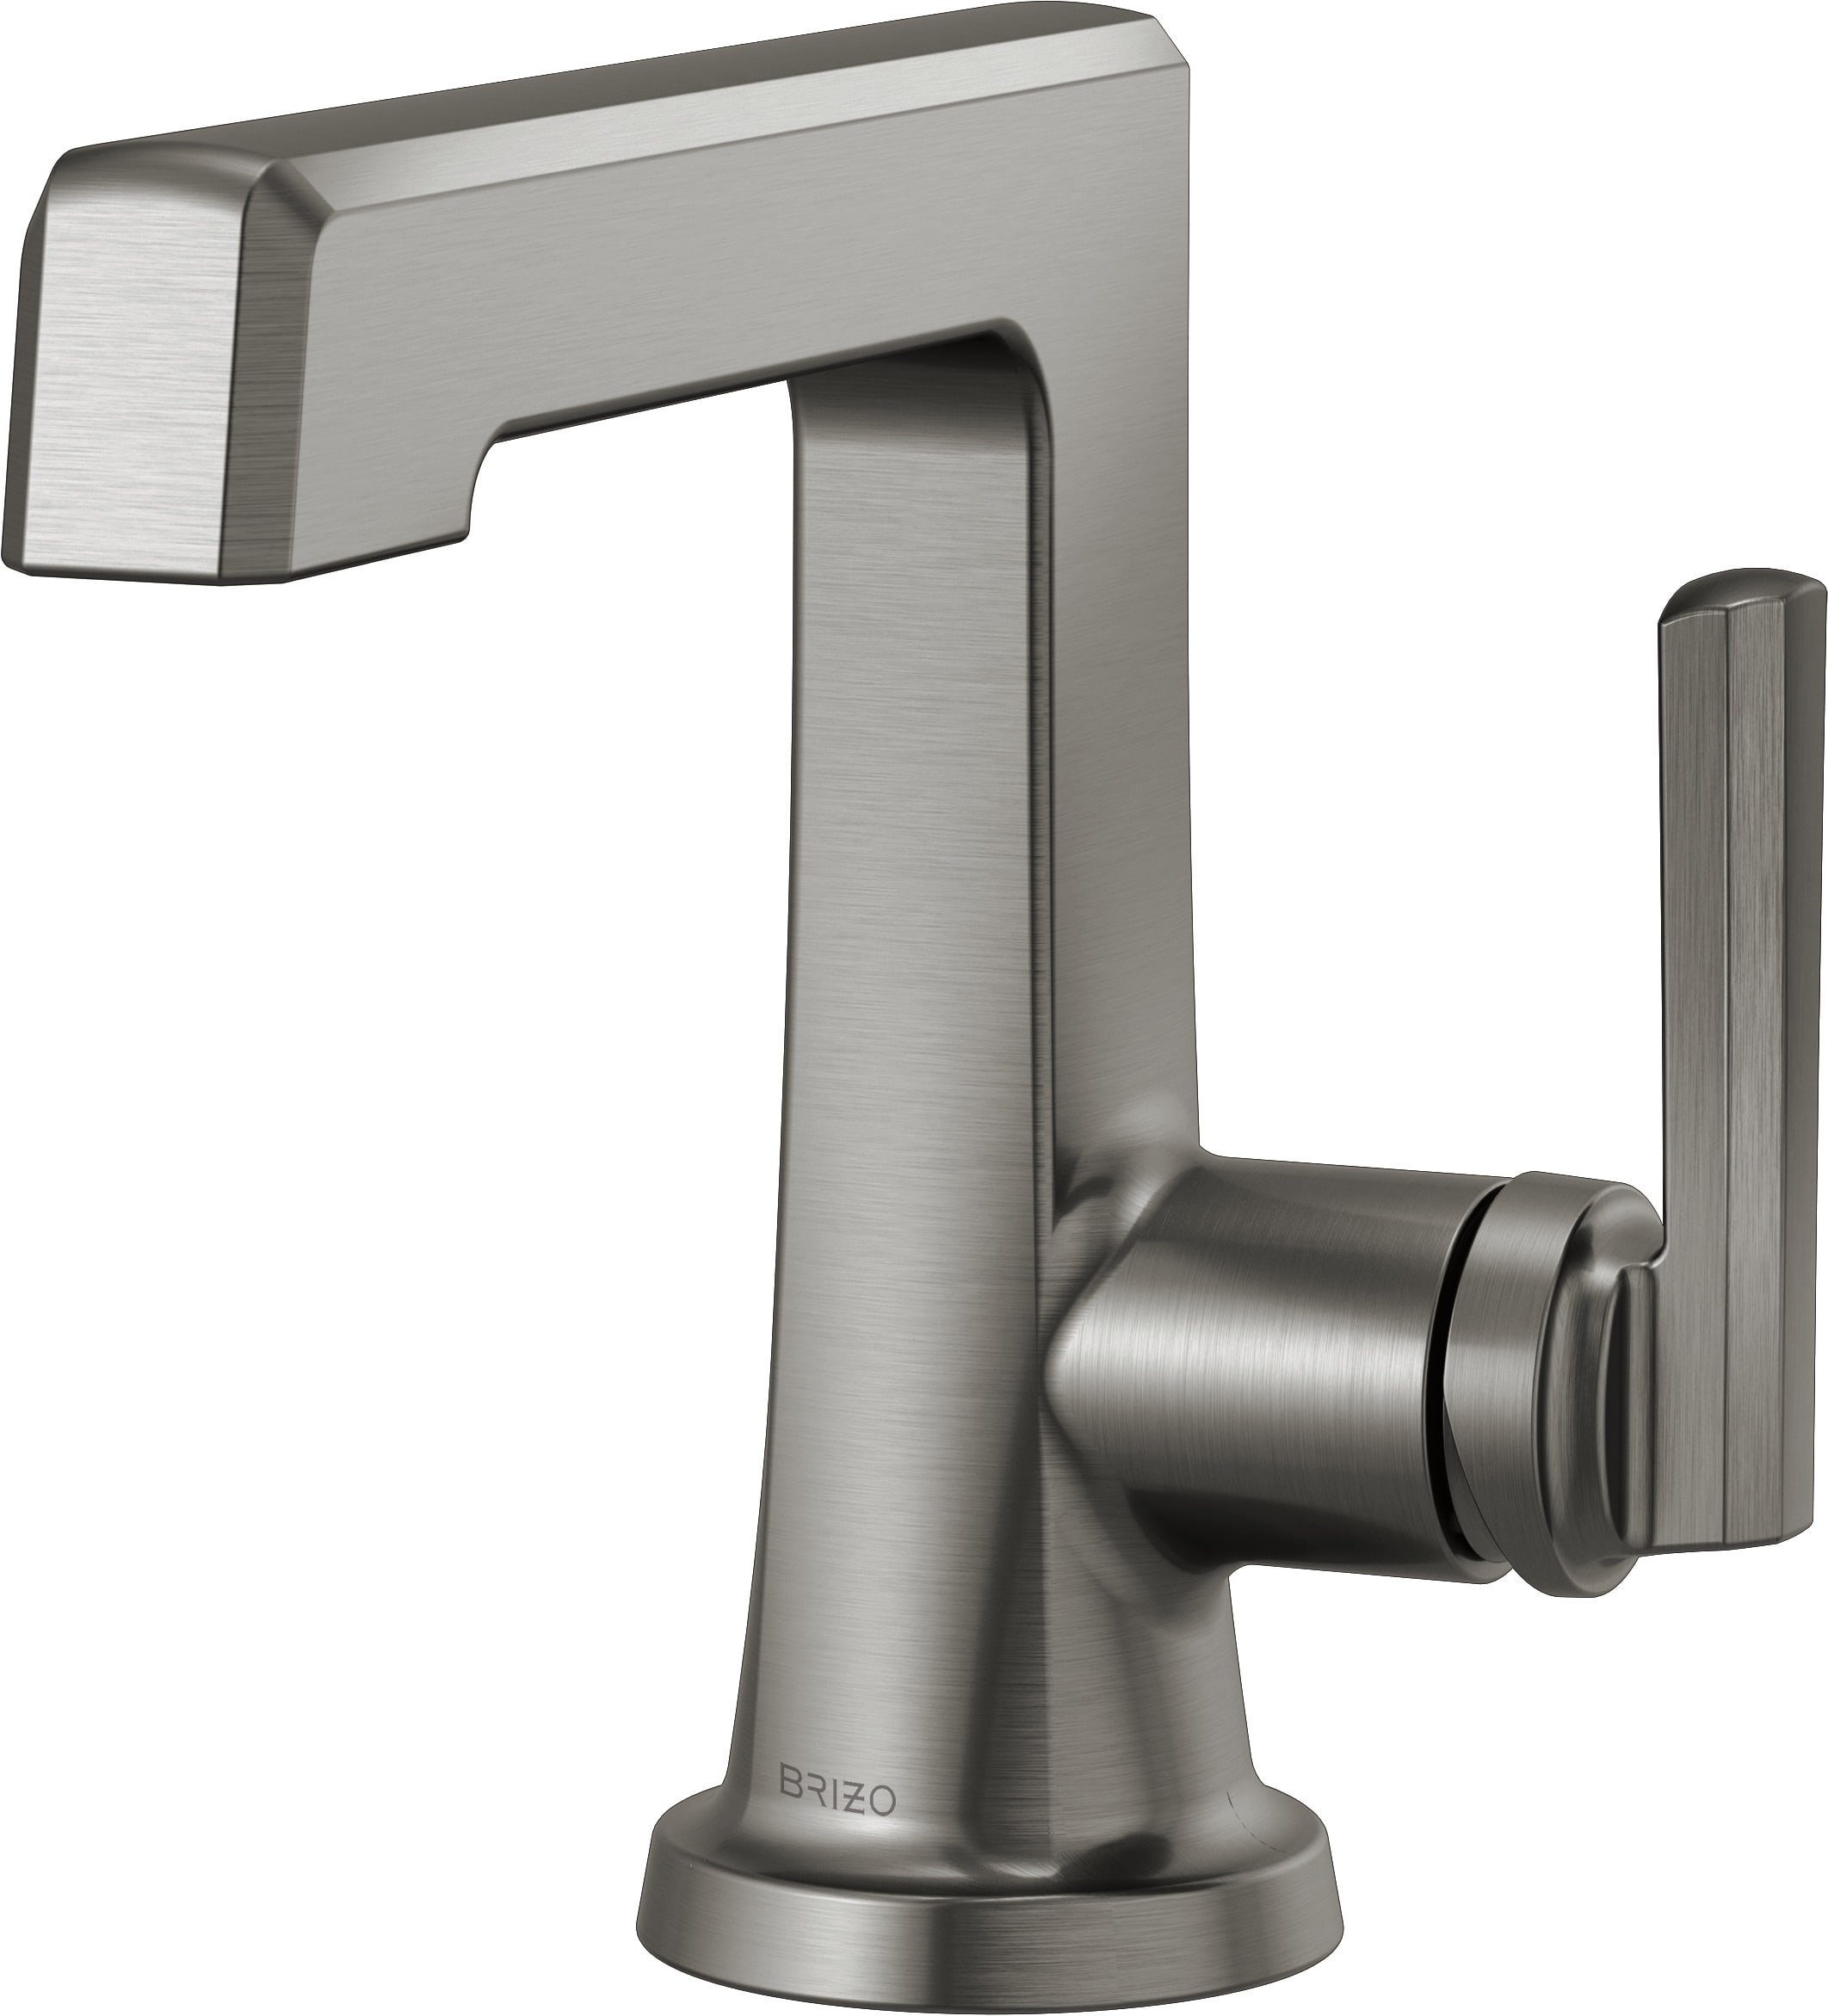 Brizo 65098lf Sl Luxe Steel Levoir 1 5 Gpm Single Hole Bathroom Faucet Pop Up Drain Assembly Included Limited Lifetime Warranty Faucetdirect Com